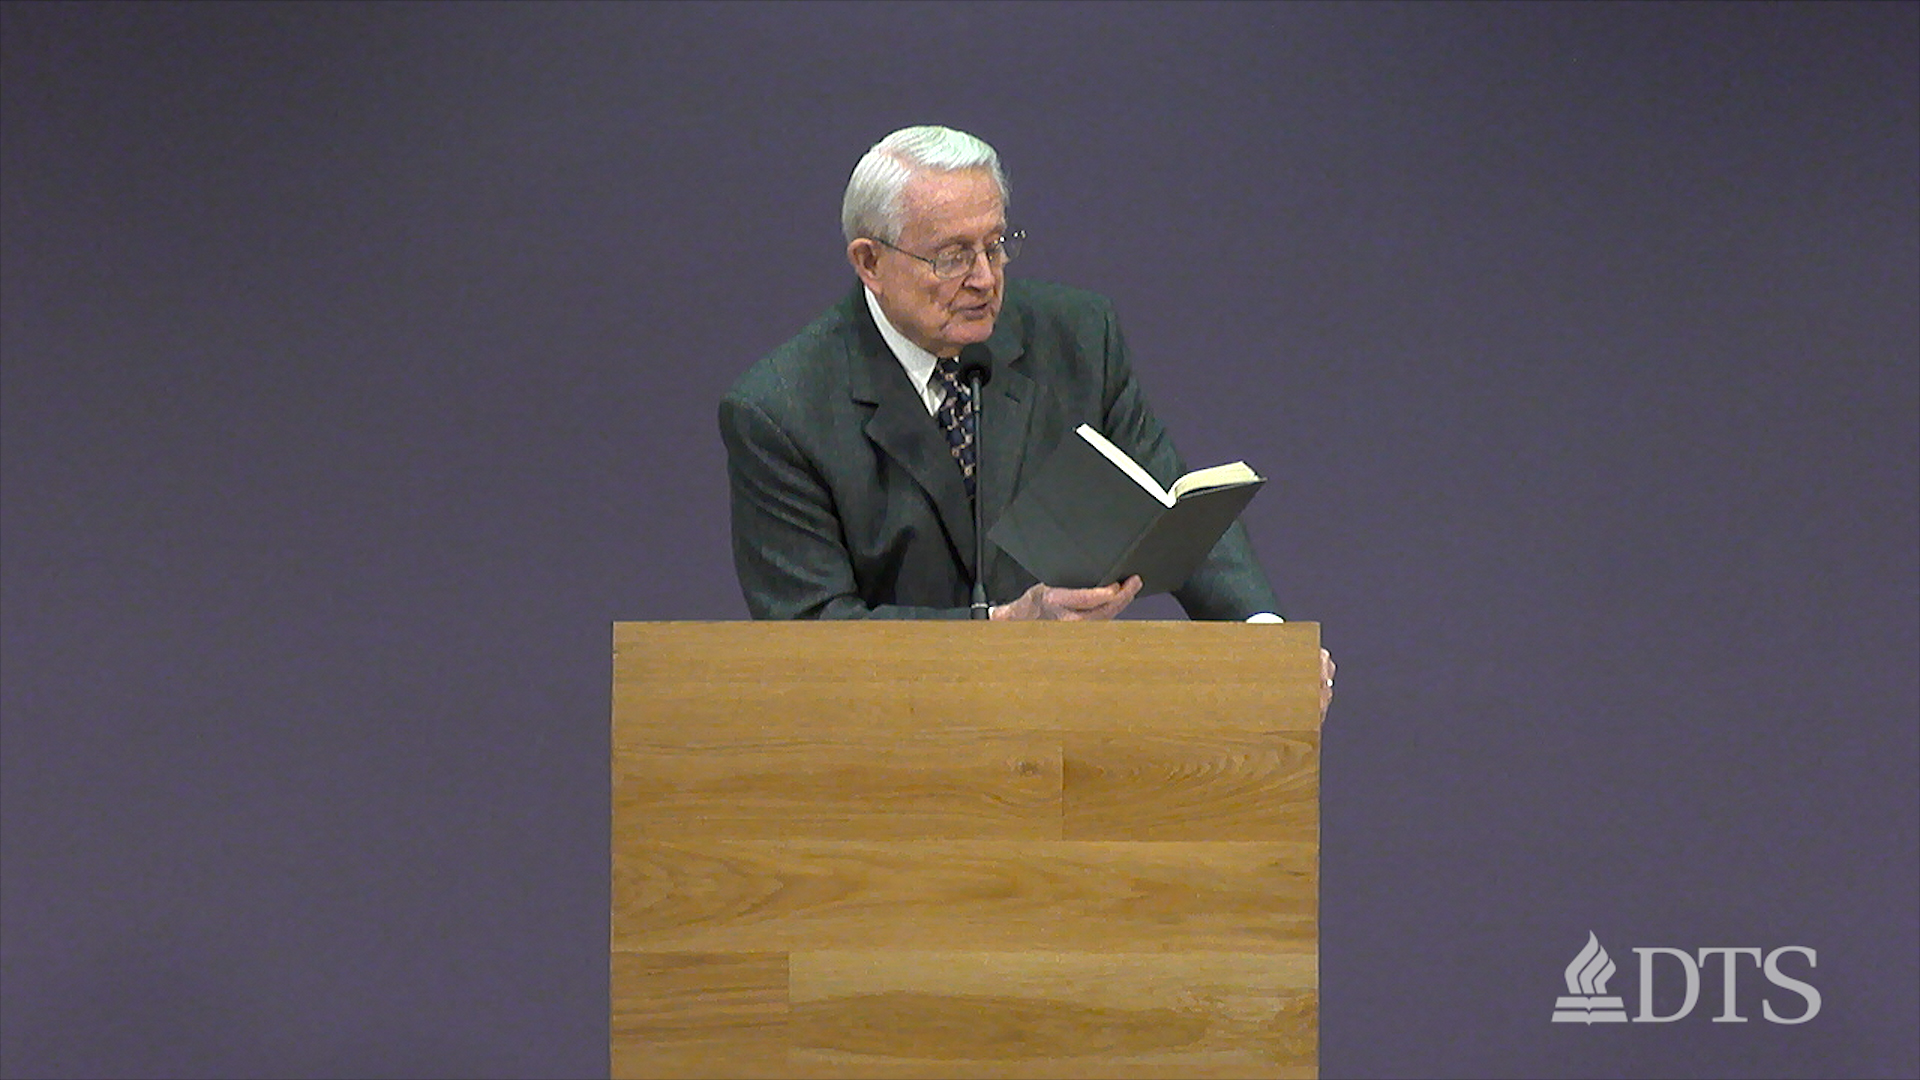 Striving for Simplicity and Purity with Charles R. Swindoll